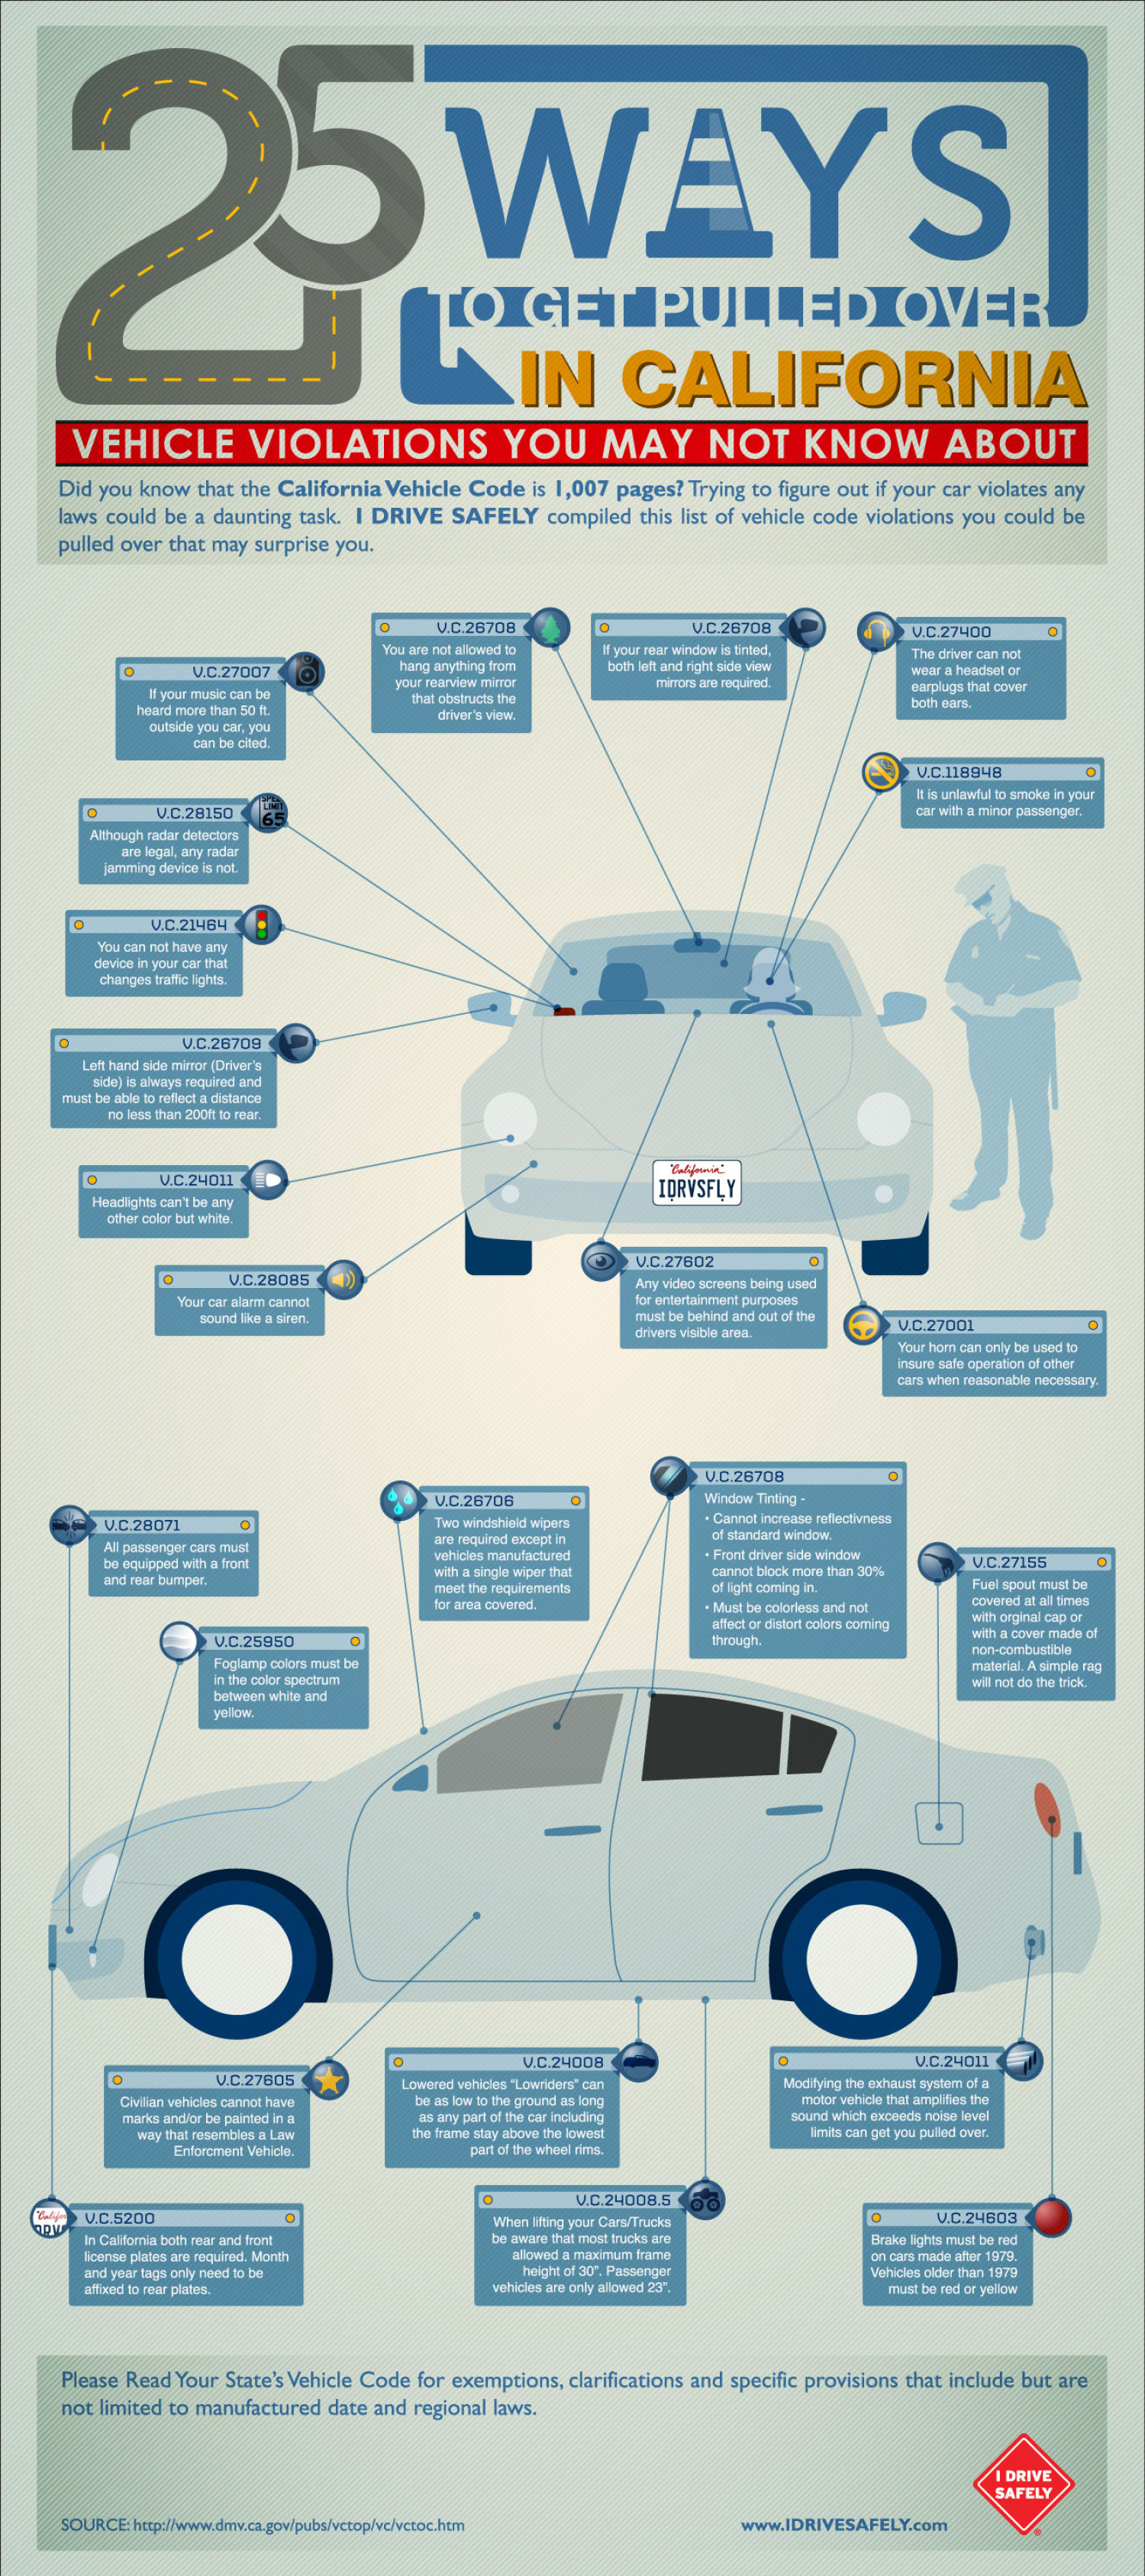 25 Ways to Get Pulled Over in California Infographic